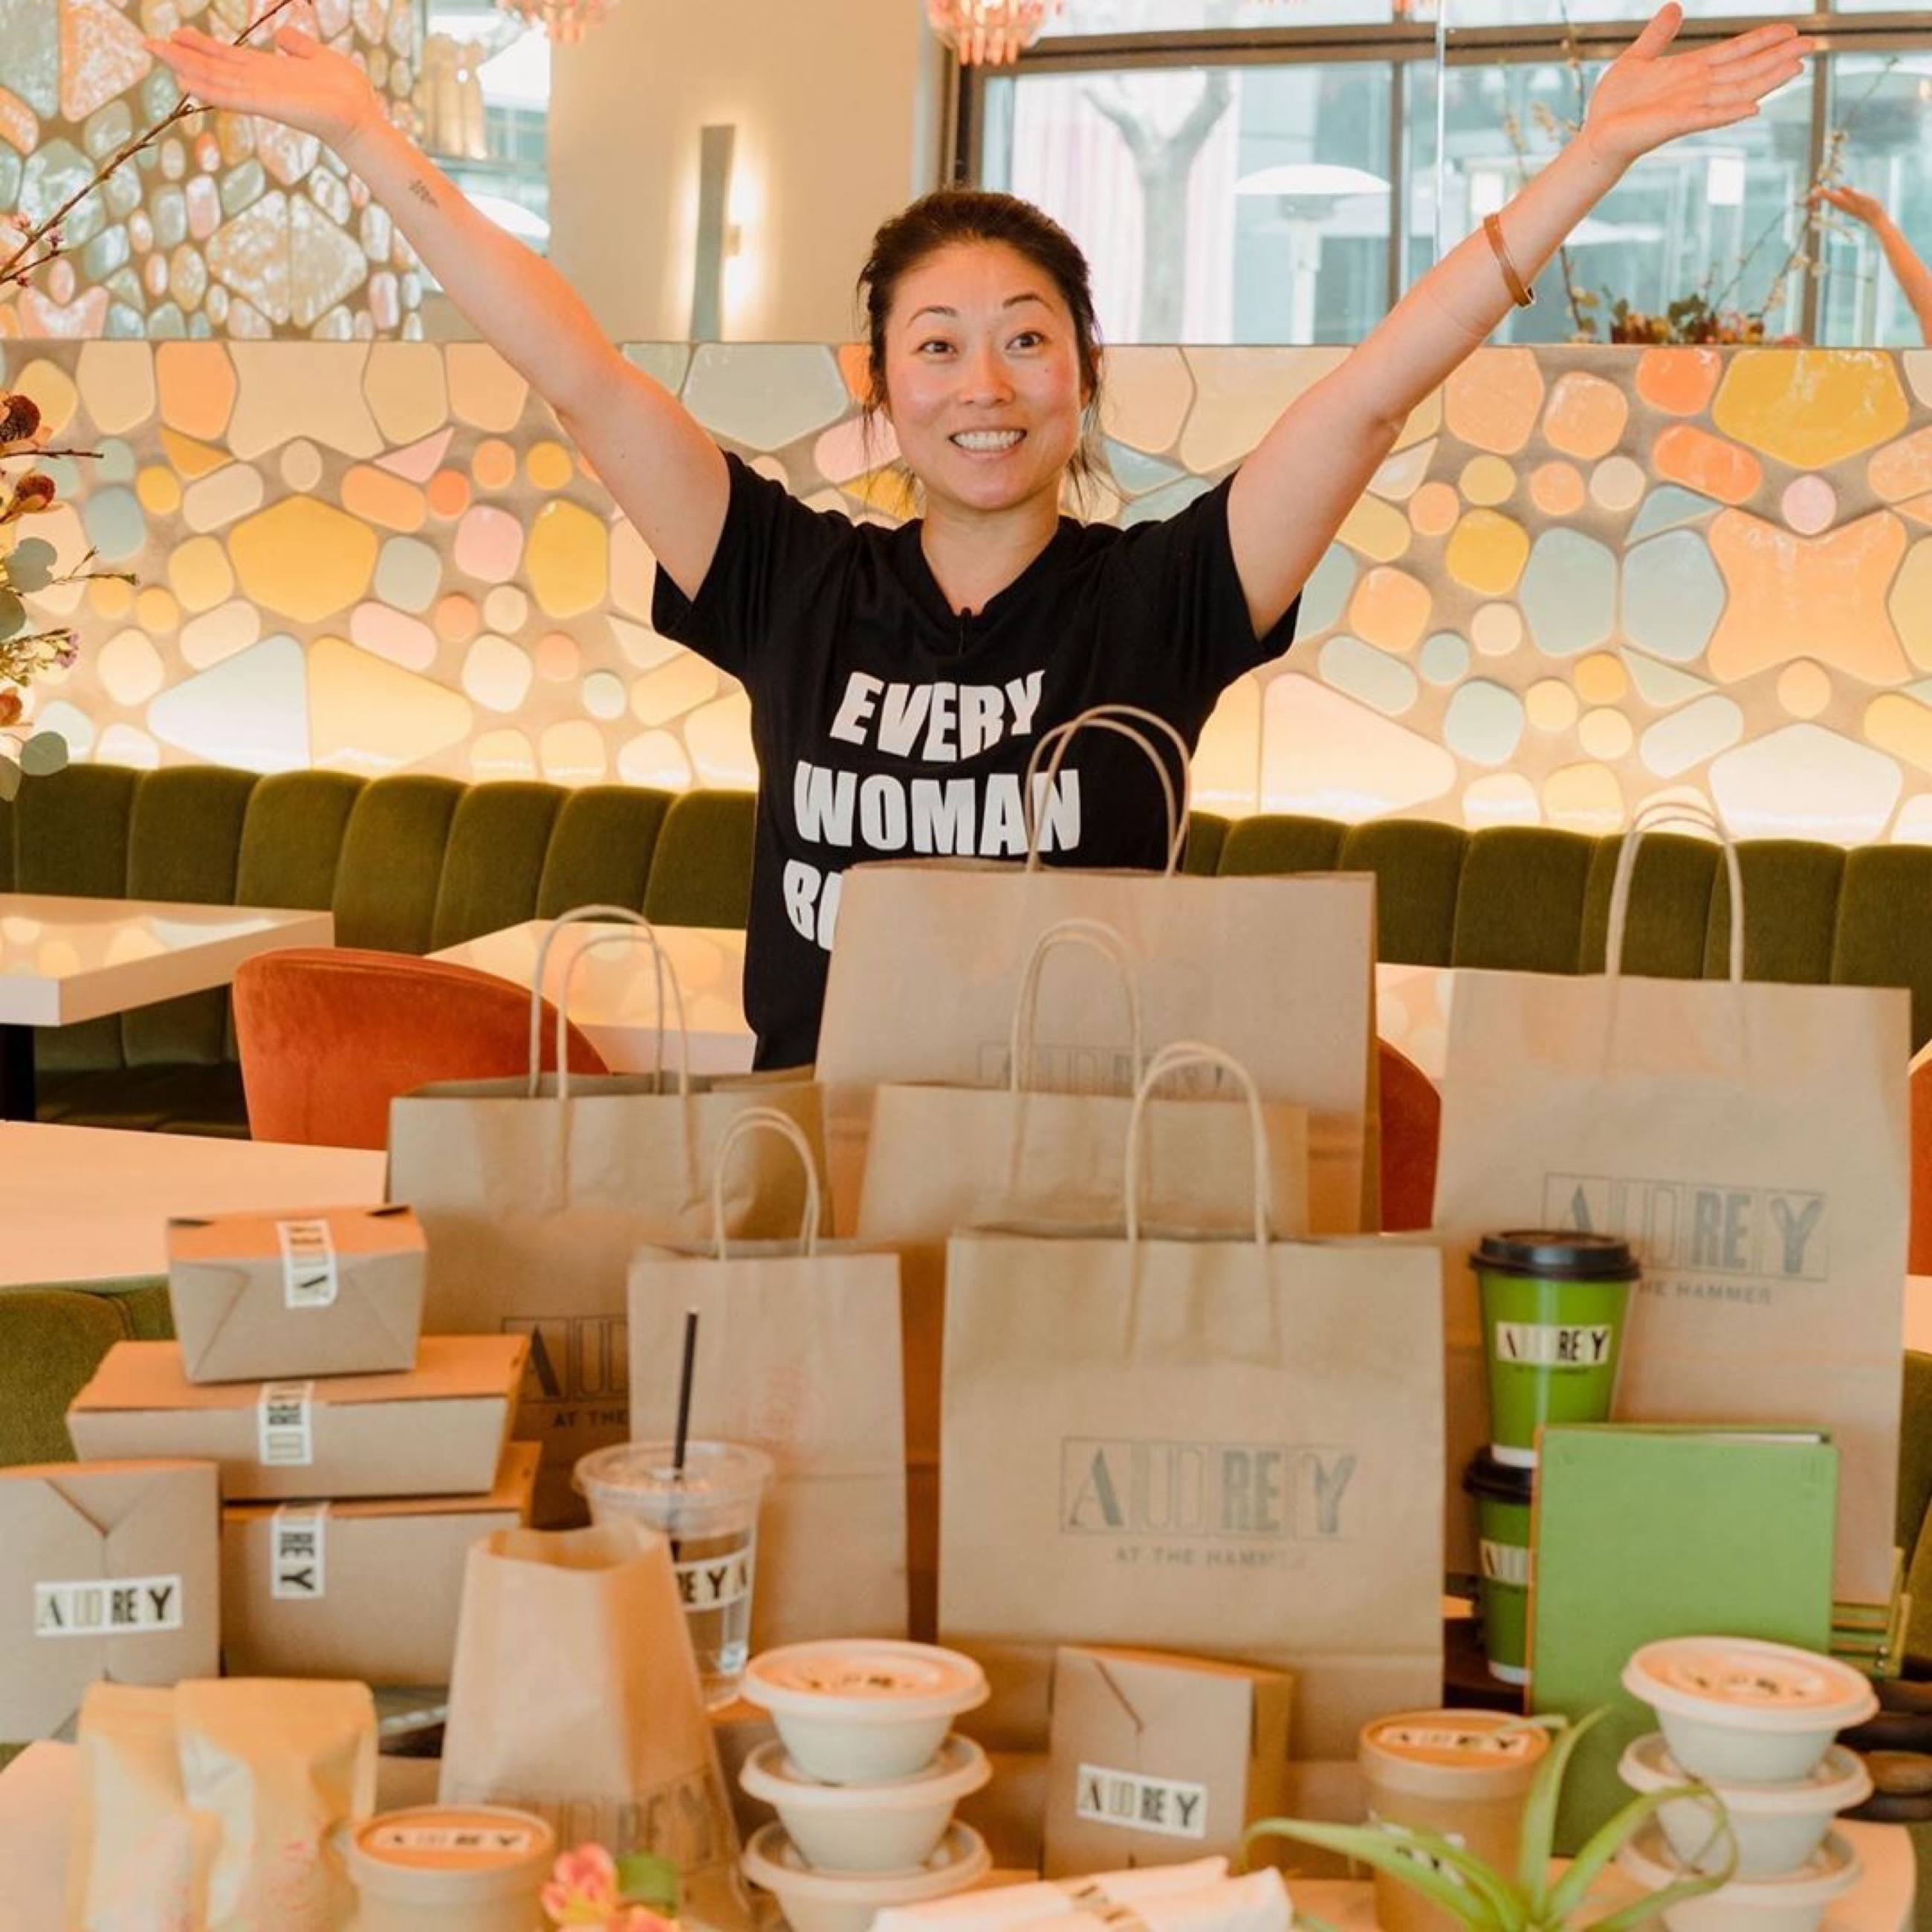 Chef Lisa Giffen with to-go orders and Audrey Provisions bulk items